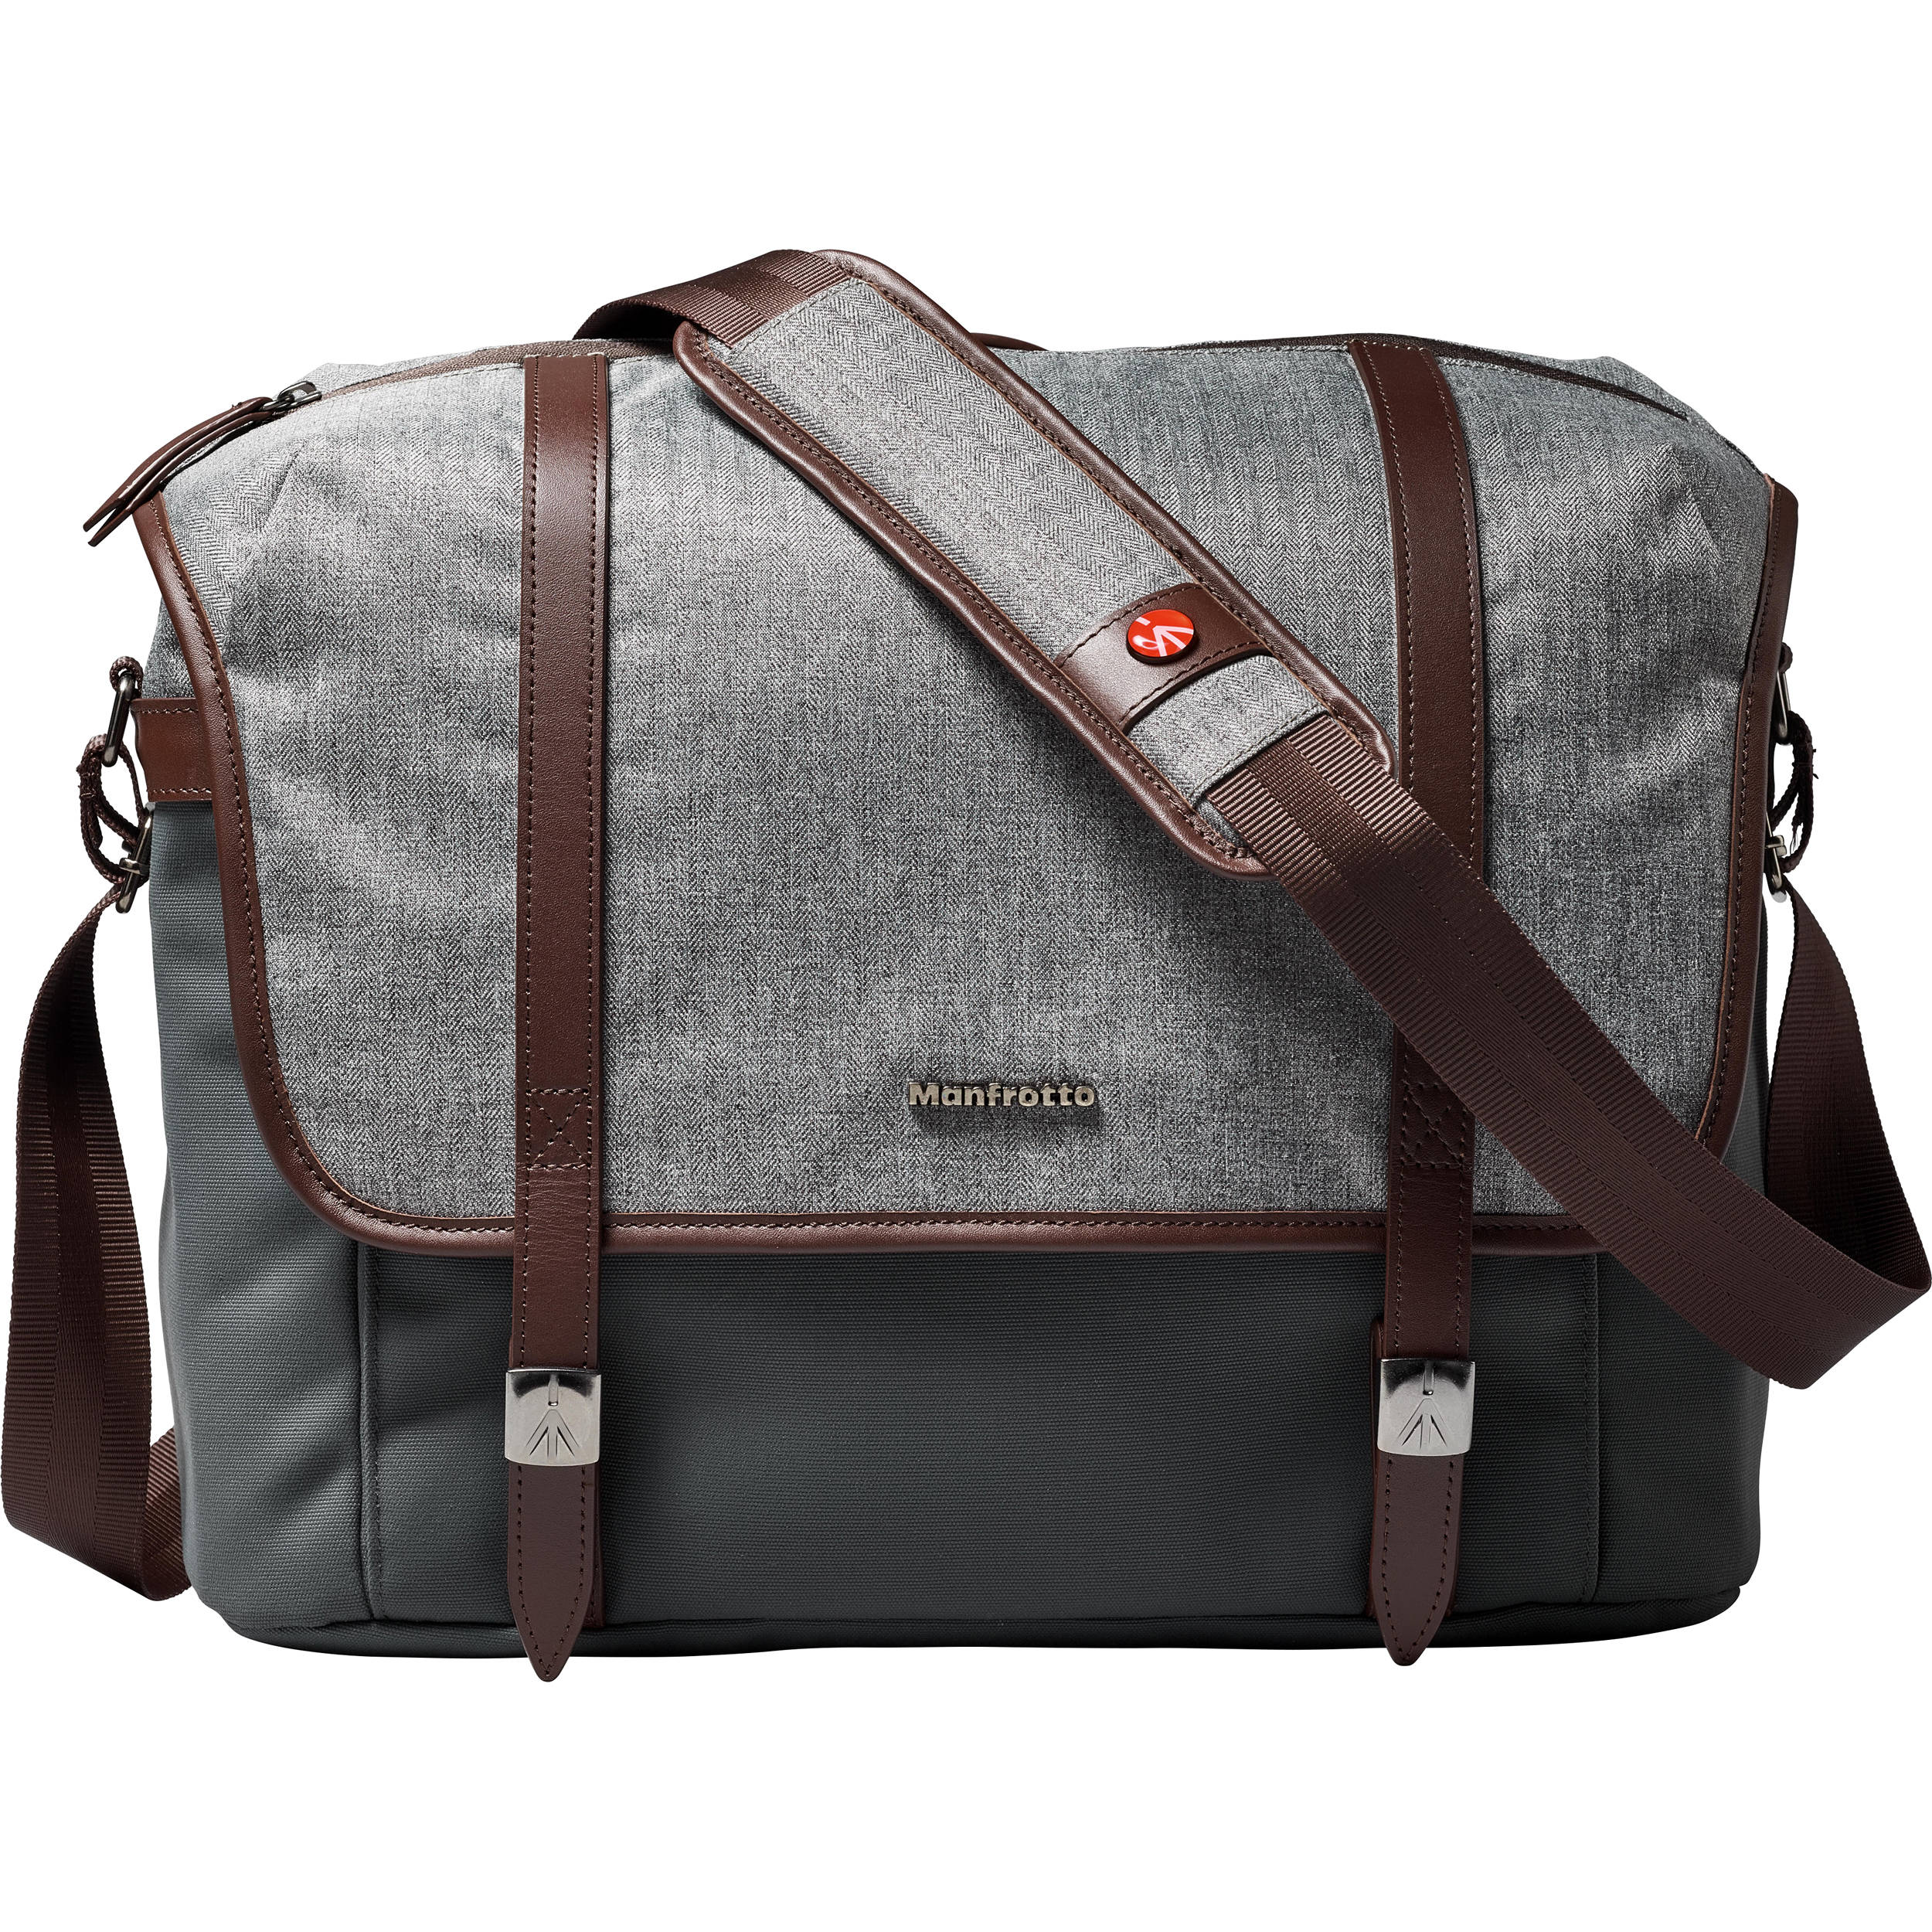 Manfrotto Windsor Camera Messenger Bag Medium Gray